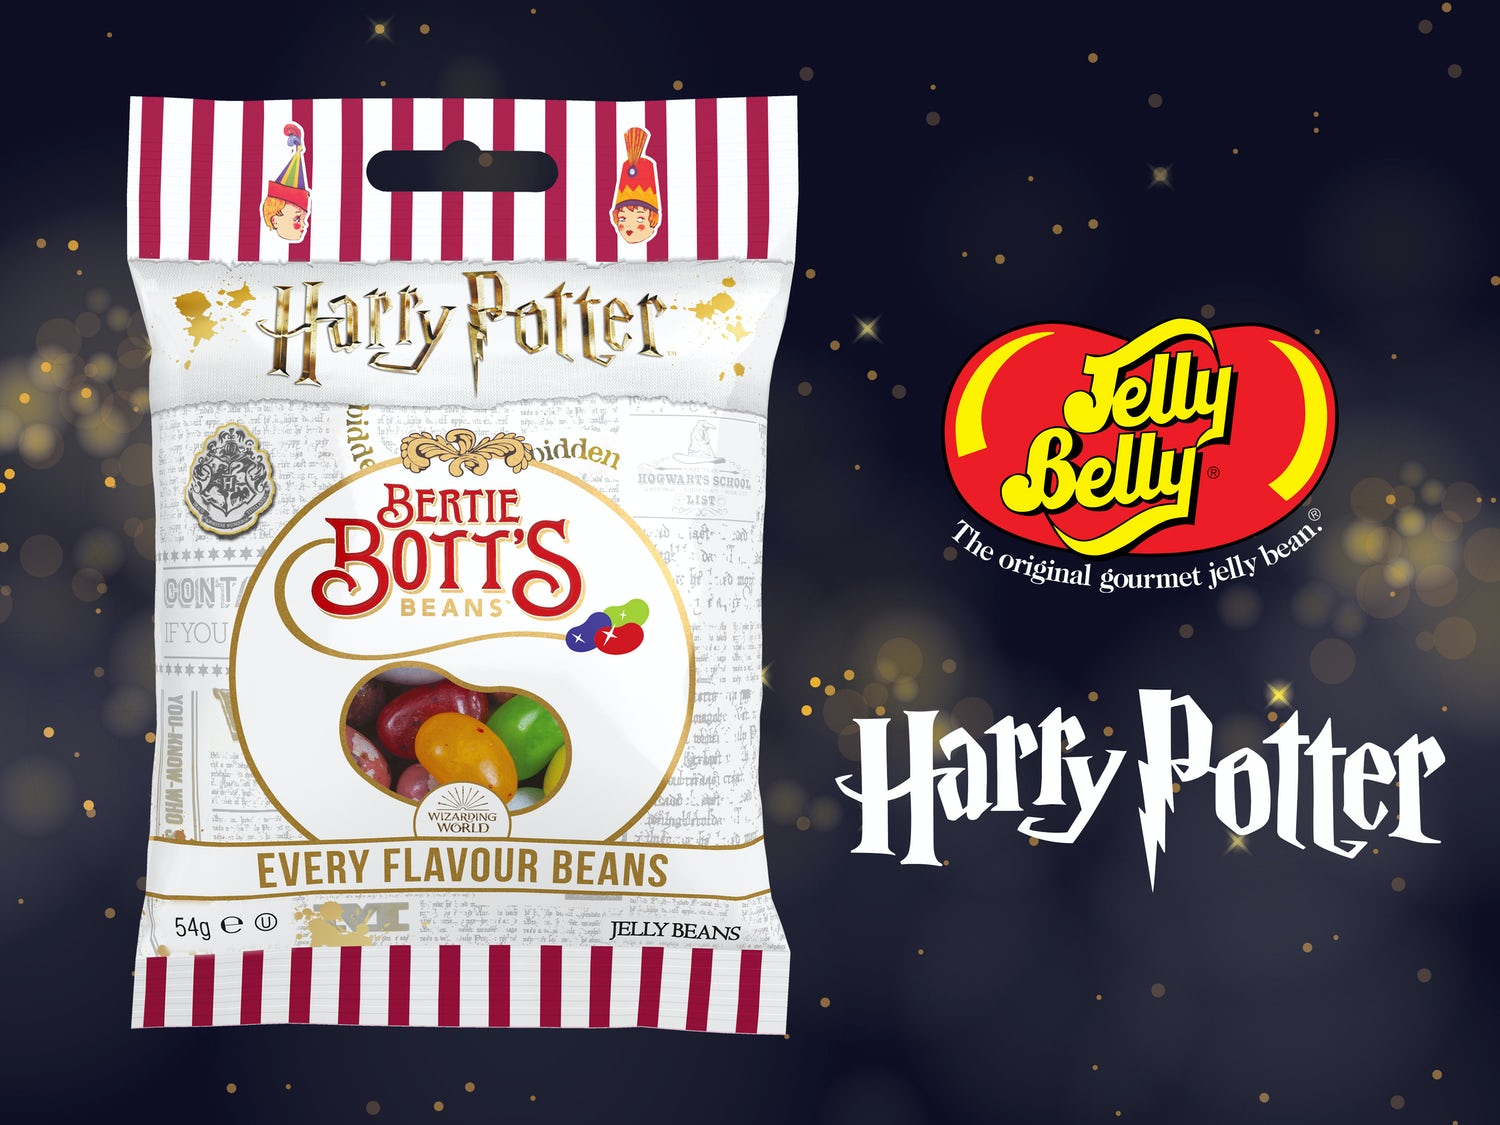 Jelly Belly Bertie Bott's Every Flavour Beans Image